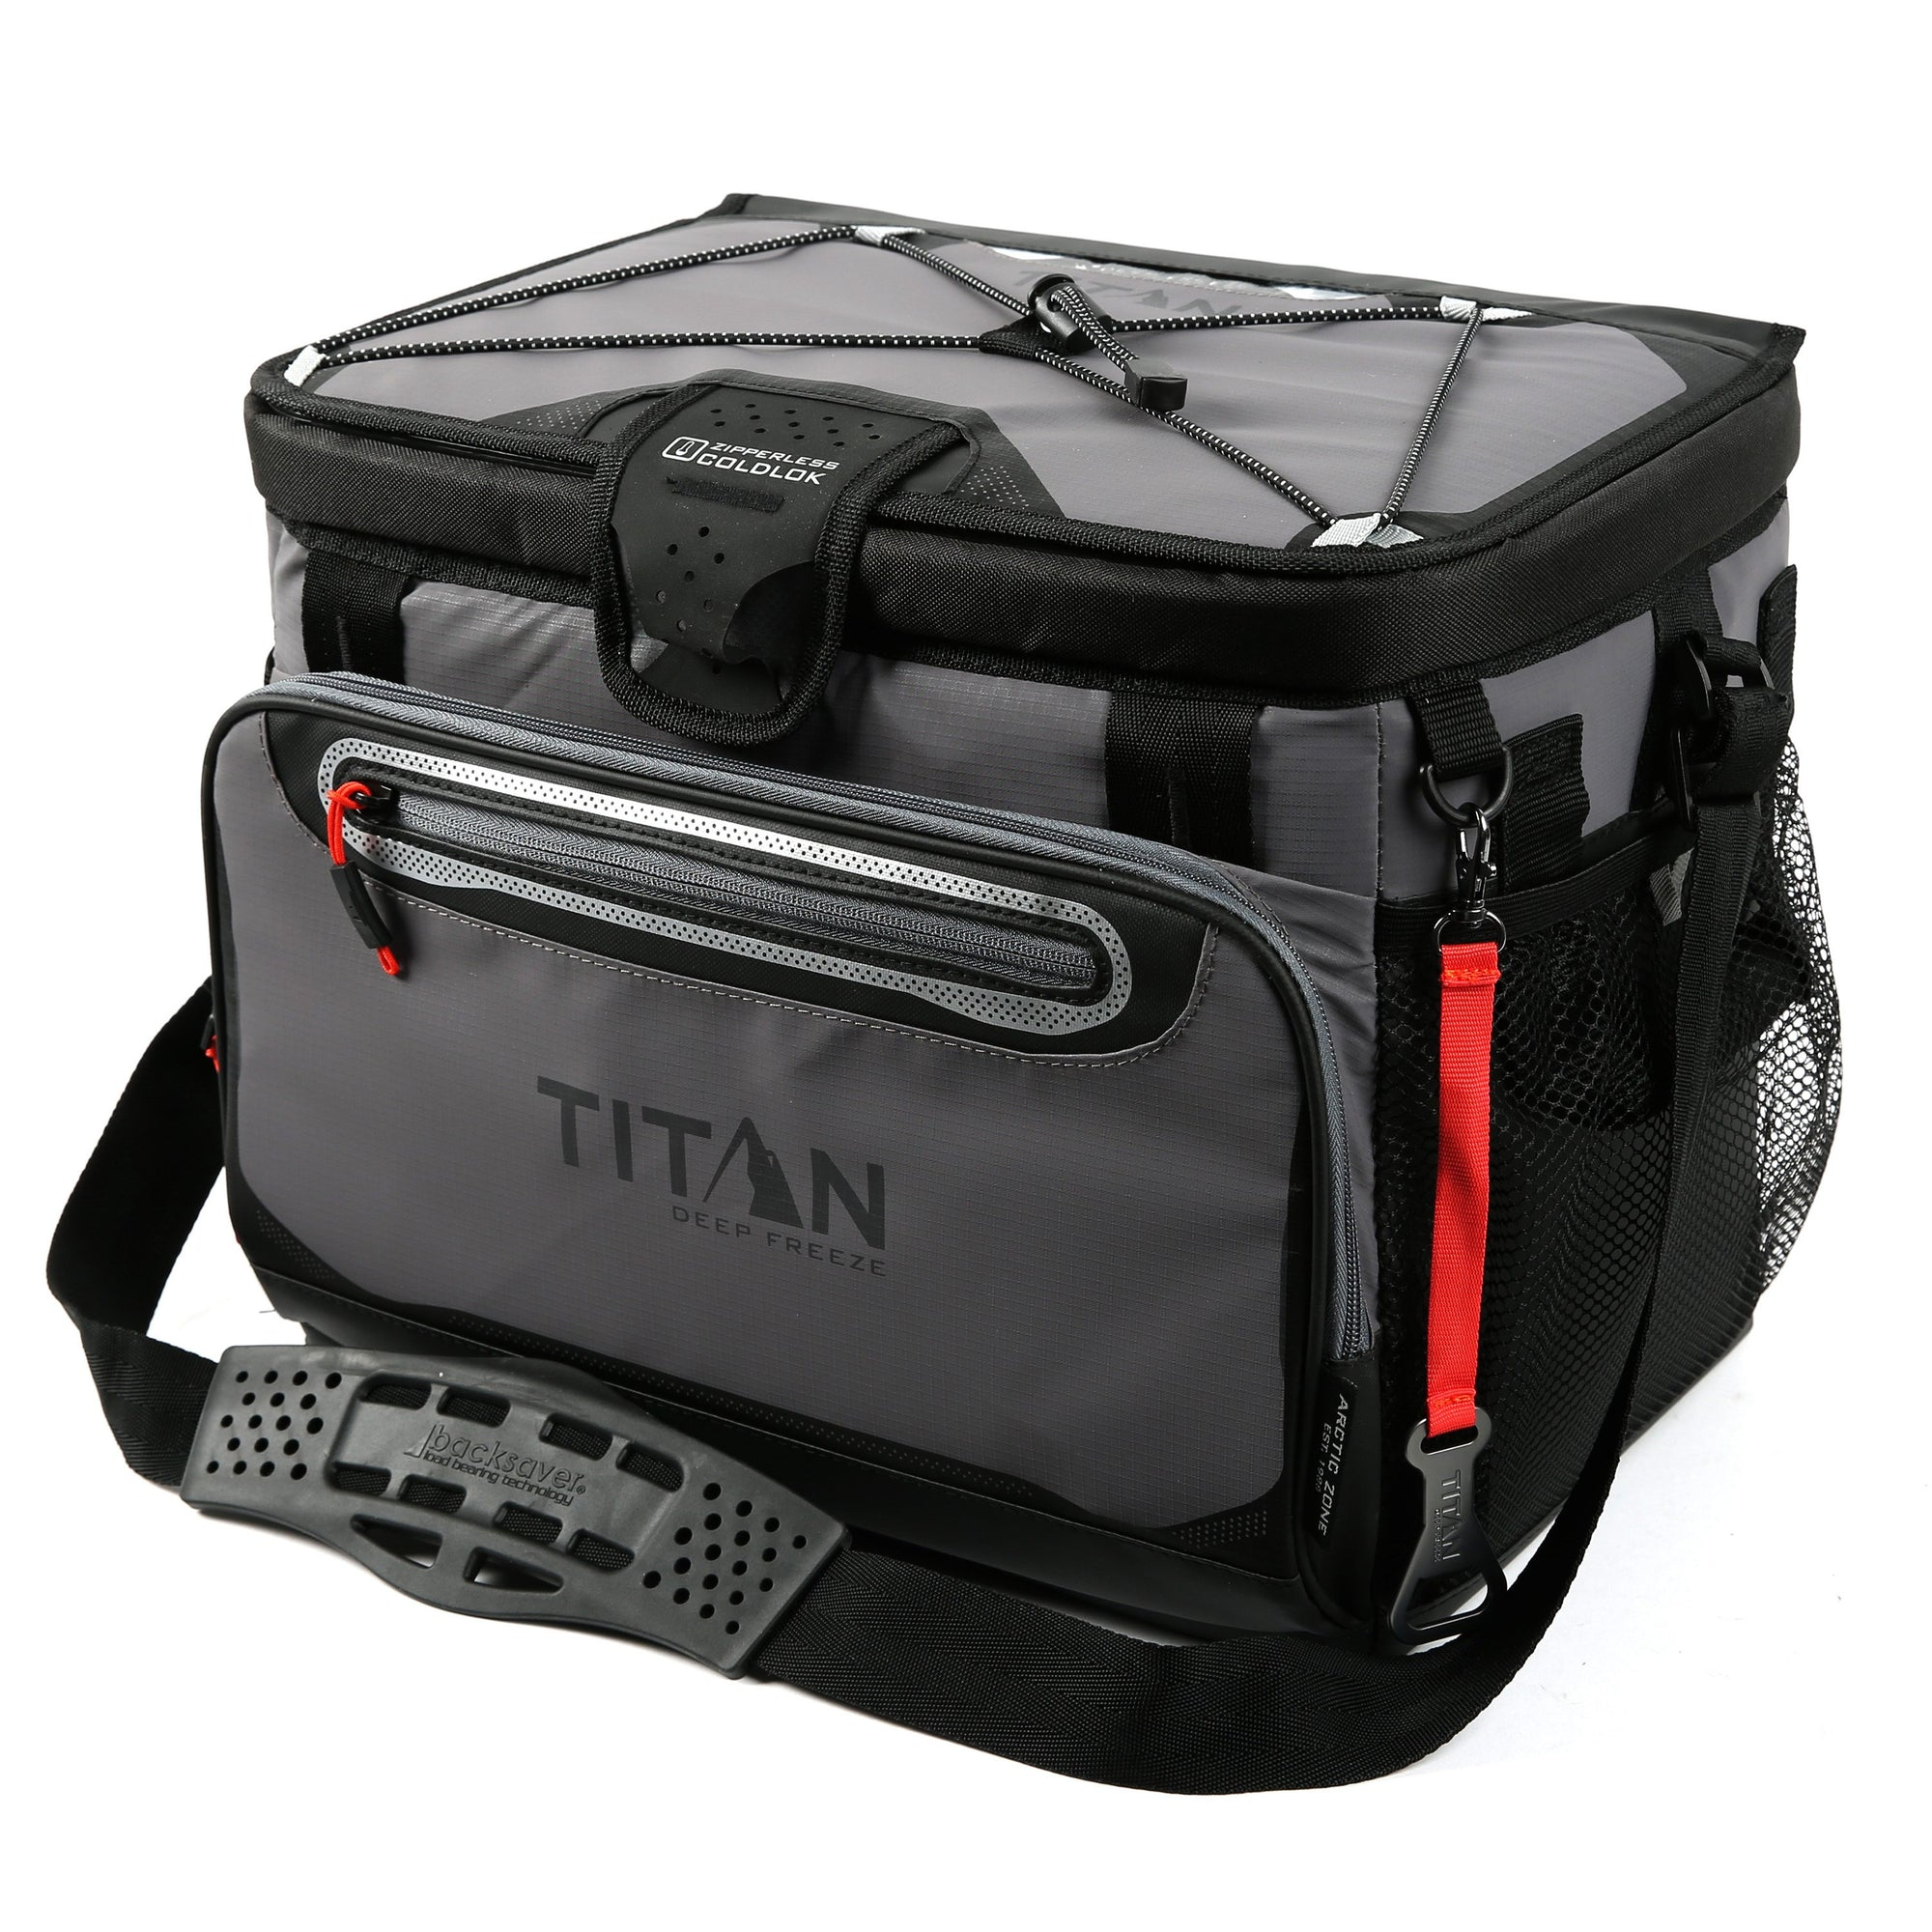 Titan Deep Freeze® 30 Can Zipperless™ HardBody® Cooler - Sharkskin Gray - Front, closed